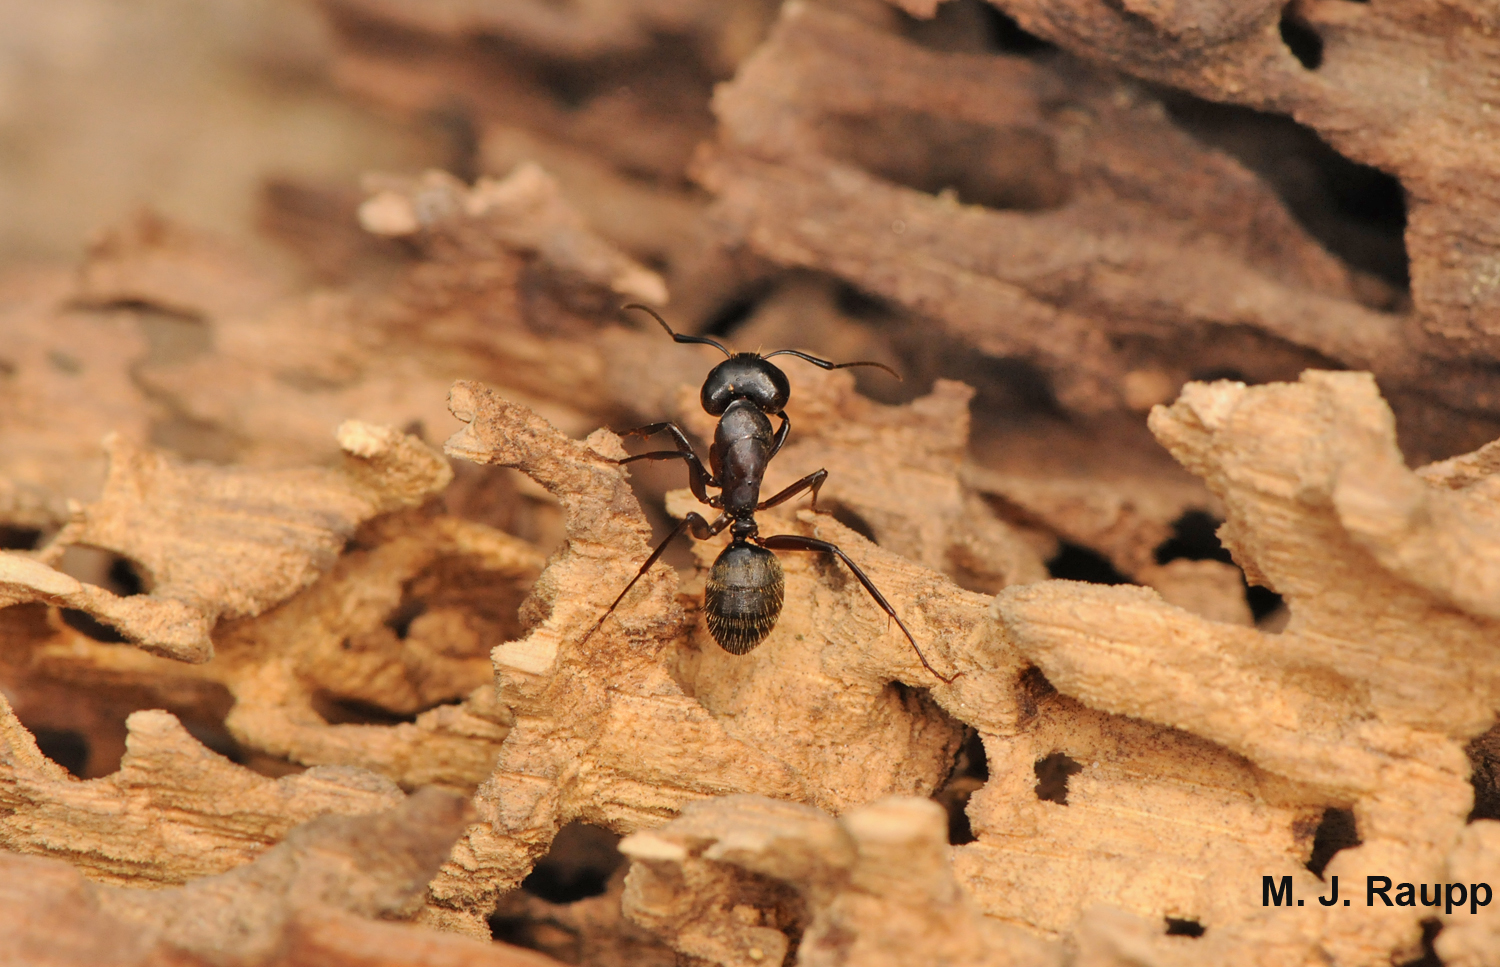 Carpenter ants excavate galleries for pupae and larvae in trees and stumps outdoors.